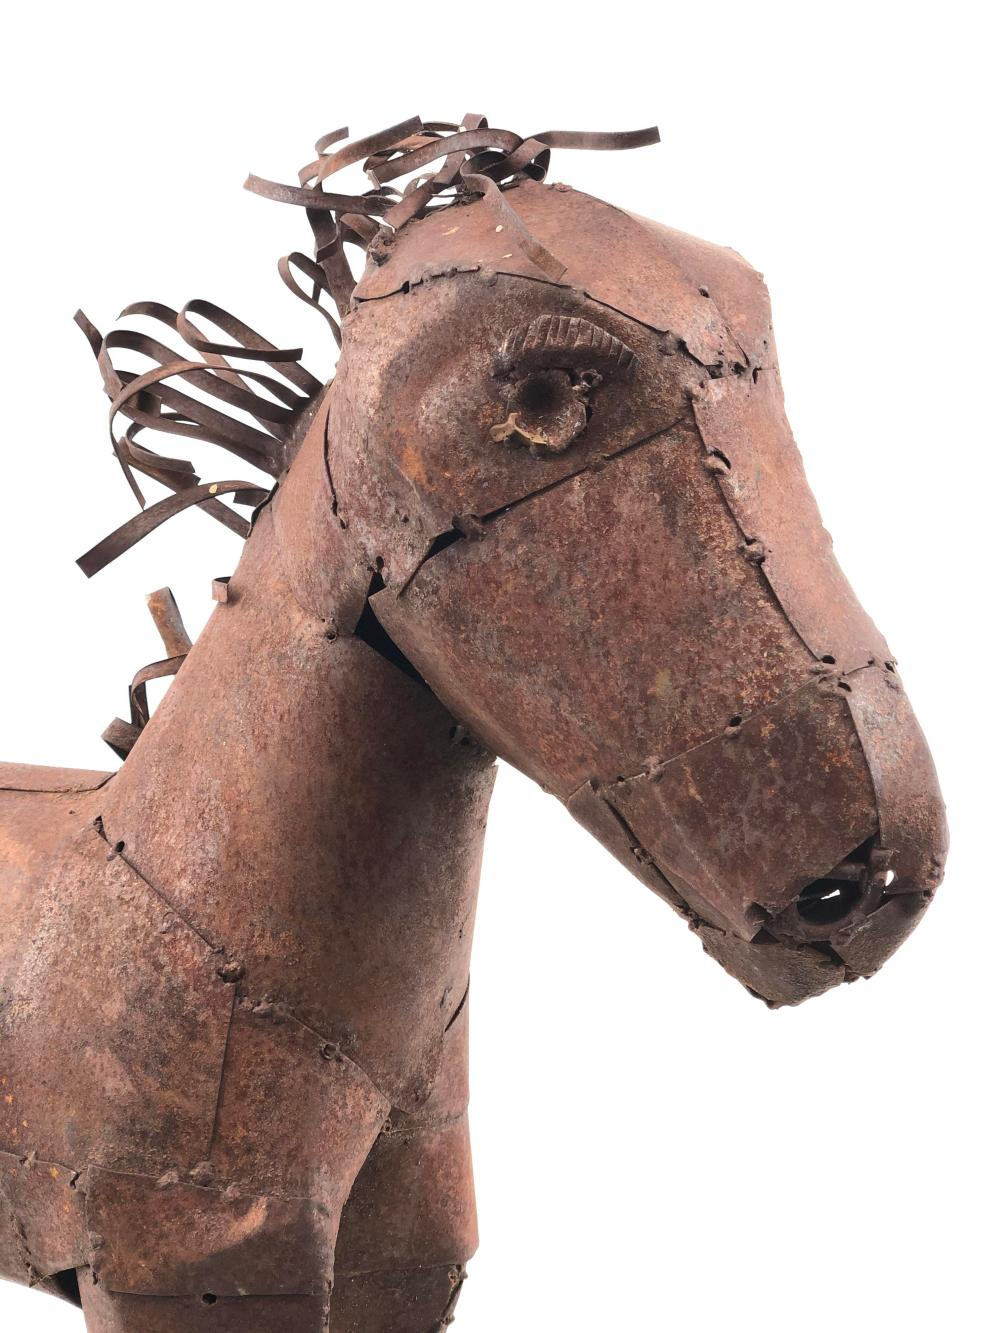 Sold Price Rustic Sheet Metal Yard Art Mini Horse Sculpture August 6 0120 8 00 Am Mst